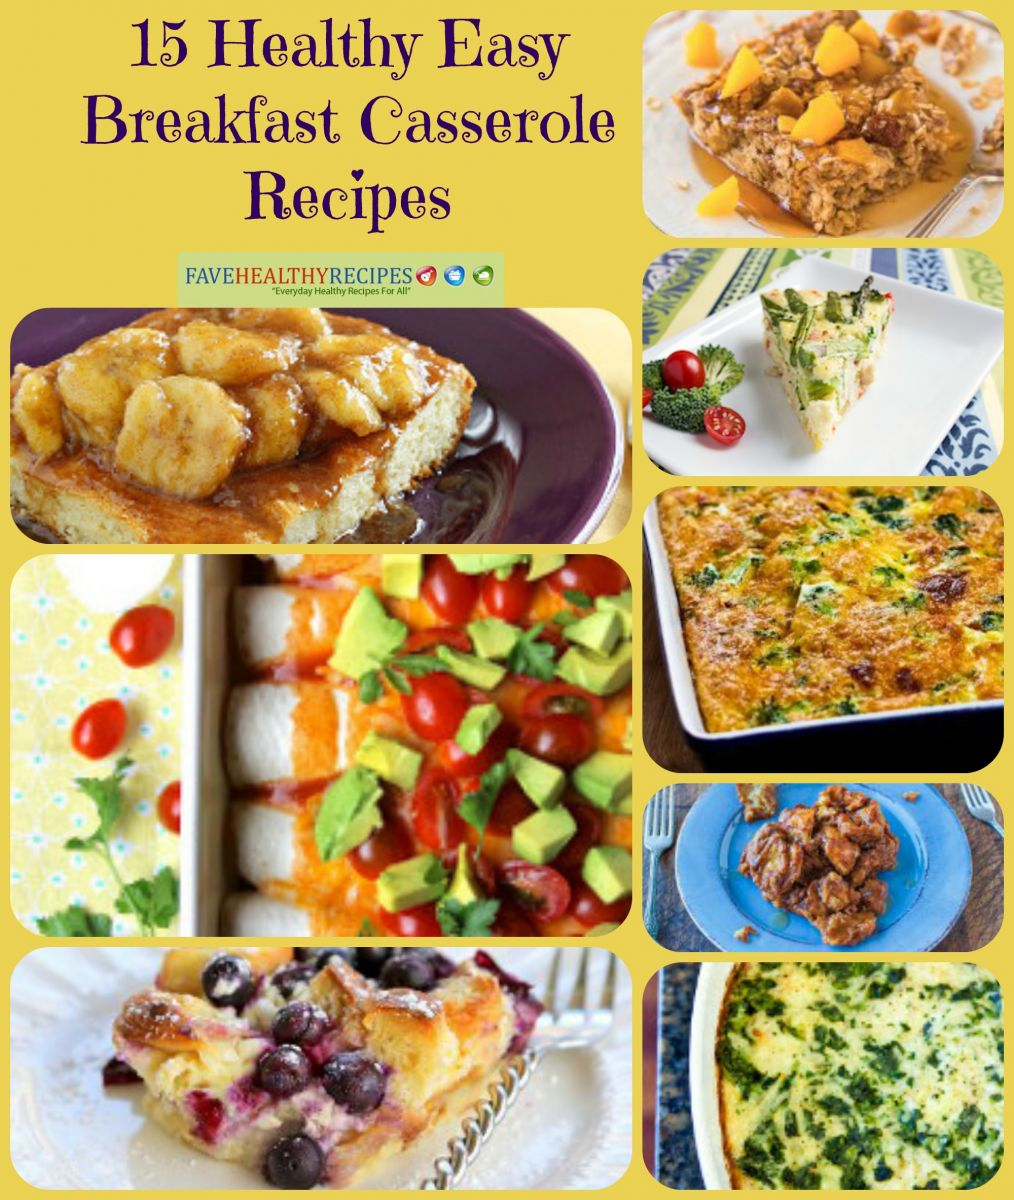 15 Healthy Easy Breakfast Casserole Recipes